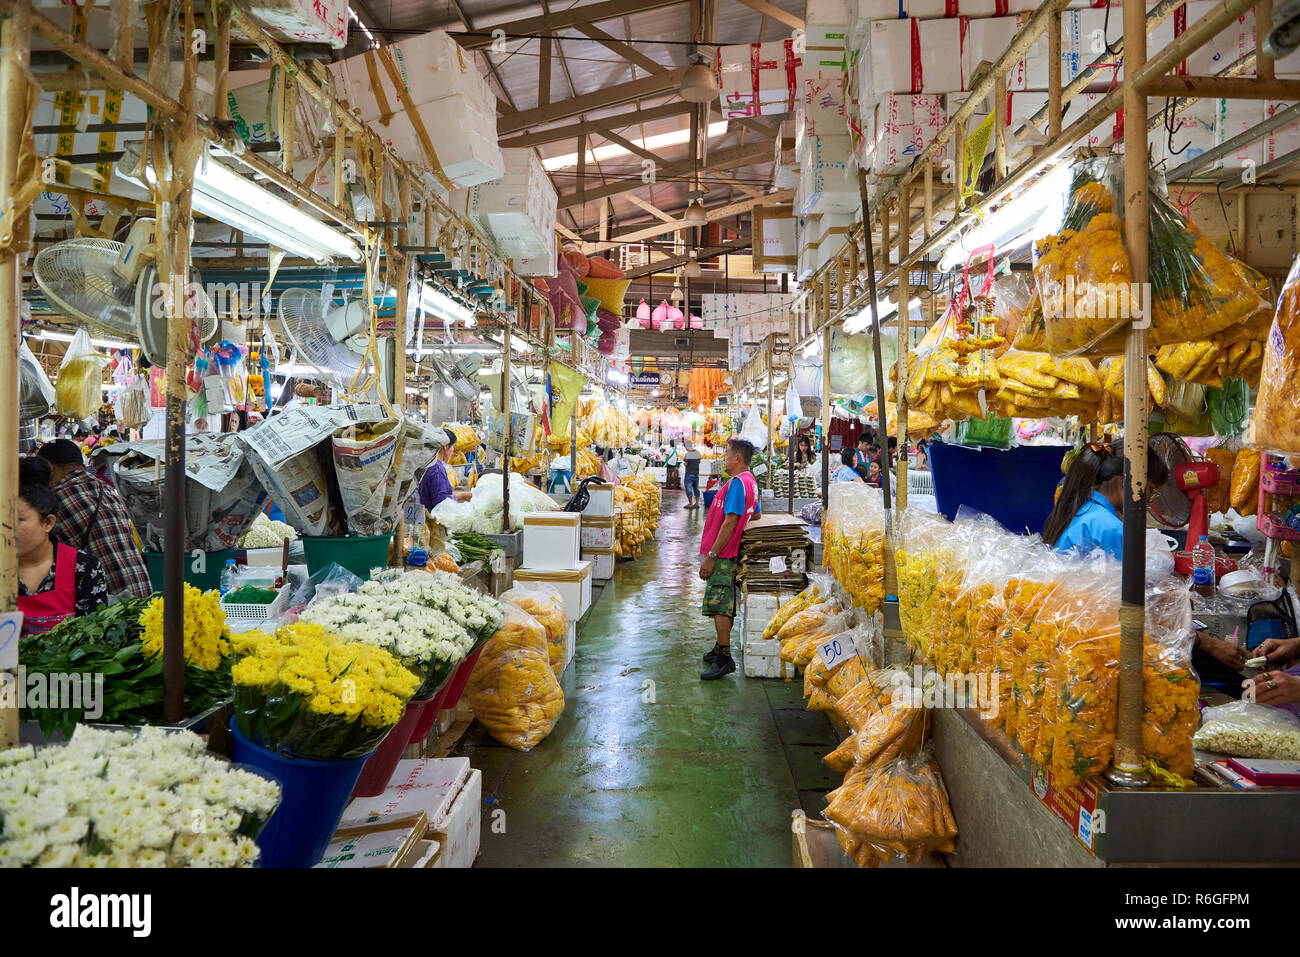 Famous Bangkok flower market. This is one of the many corridors in the covered market, lined with stalls selling wholesale petals used for decorative  Stock Photo